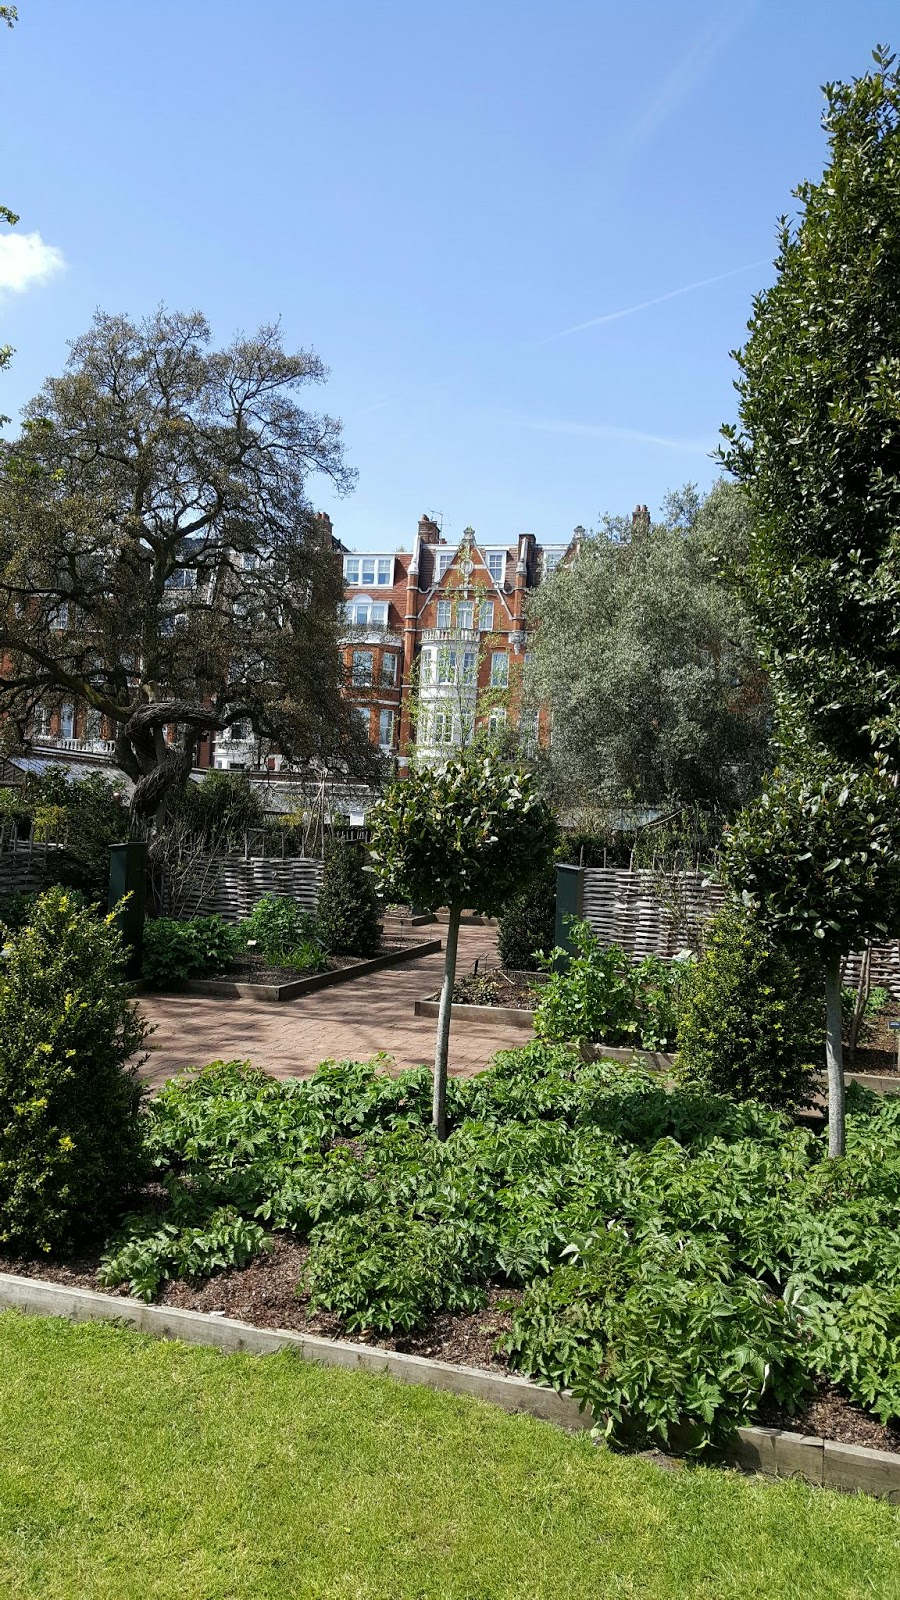 Physic garden wikipedia -  With Others Working In The Same Field By The 1700 S It Had Initiated An International Botanic Garden Seed Exchange System Which Continues To This Day